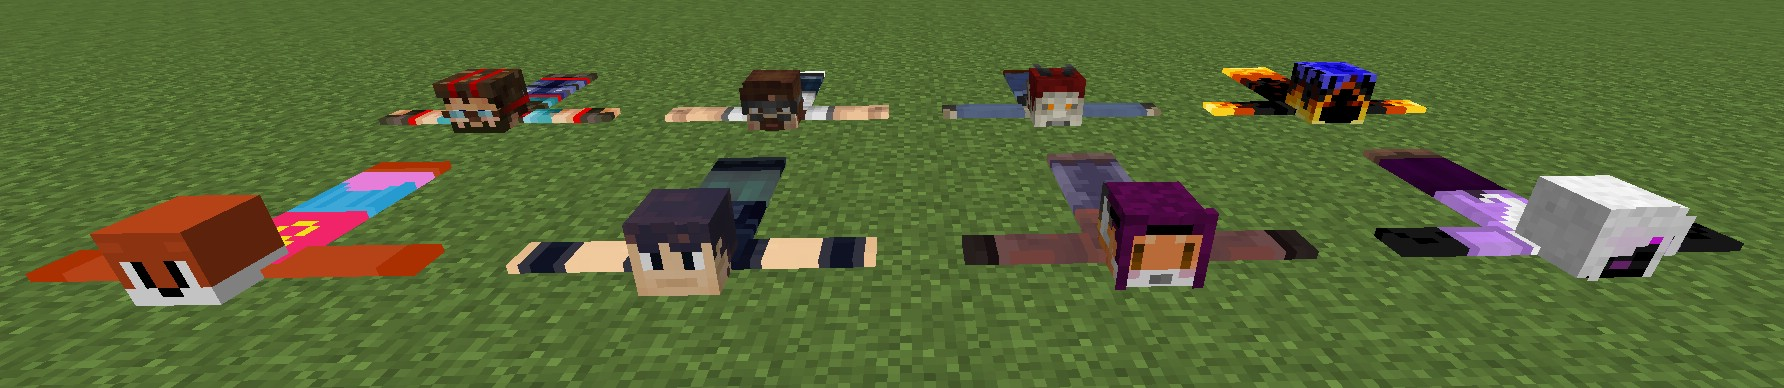 1475593897_347_Player-Rugs-Mod-1.10.21.9.4 Player Rugs Mod 1.10.2/1.9.4